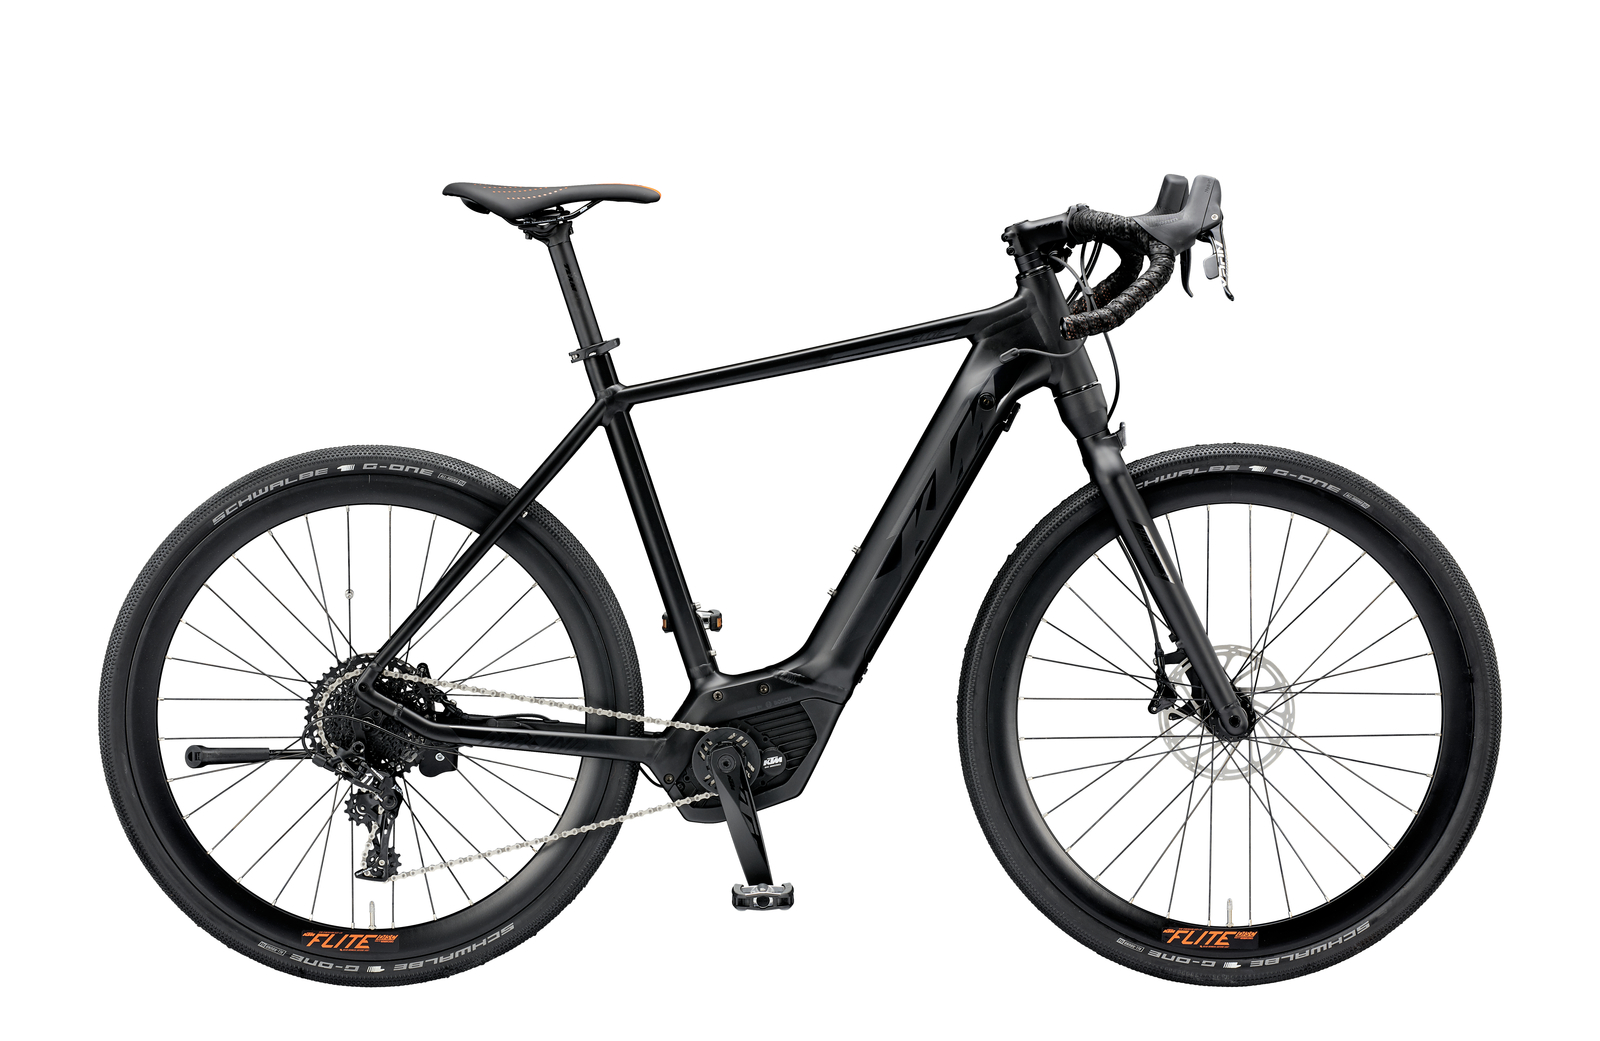 e bike geheimtipp ktm macina flite 11 cx5 modell 2019. Black Bedroom Furniture Sets. Home Design Ideas